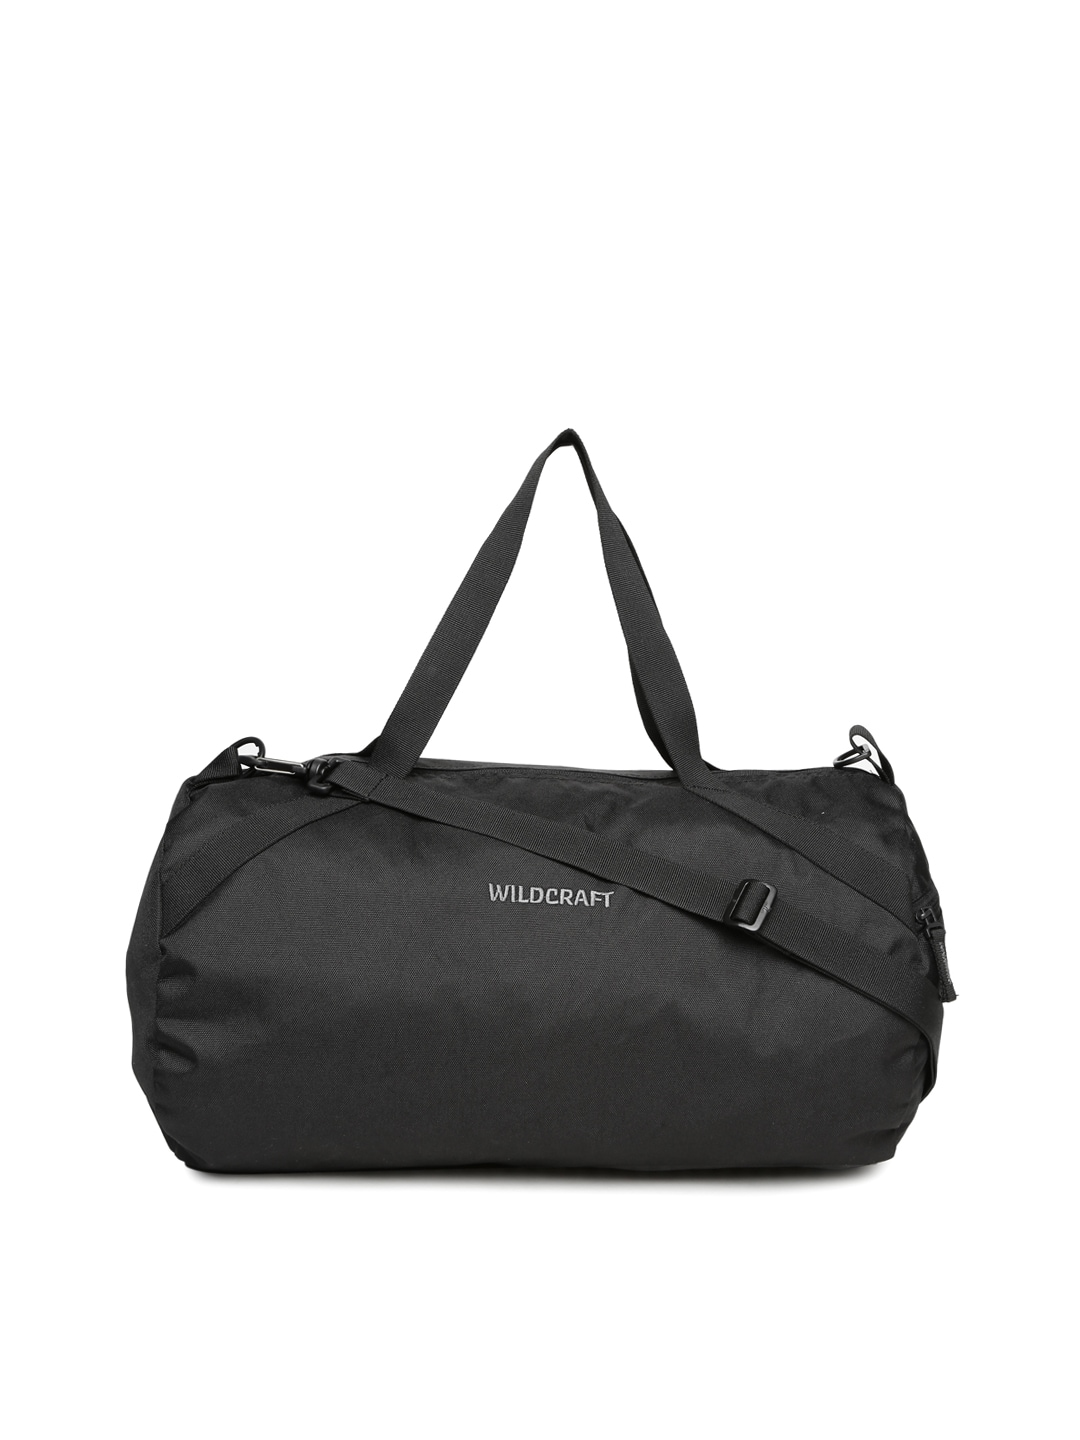 Duffle Bags - Buy Branded Duffle Bags Online in India   Myntra bbf336d521